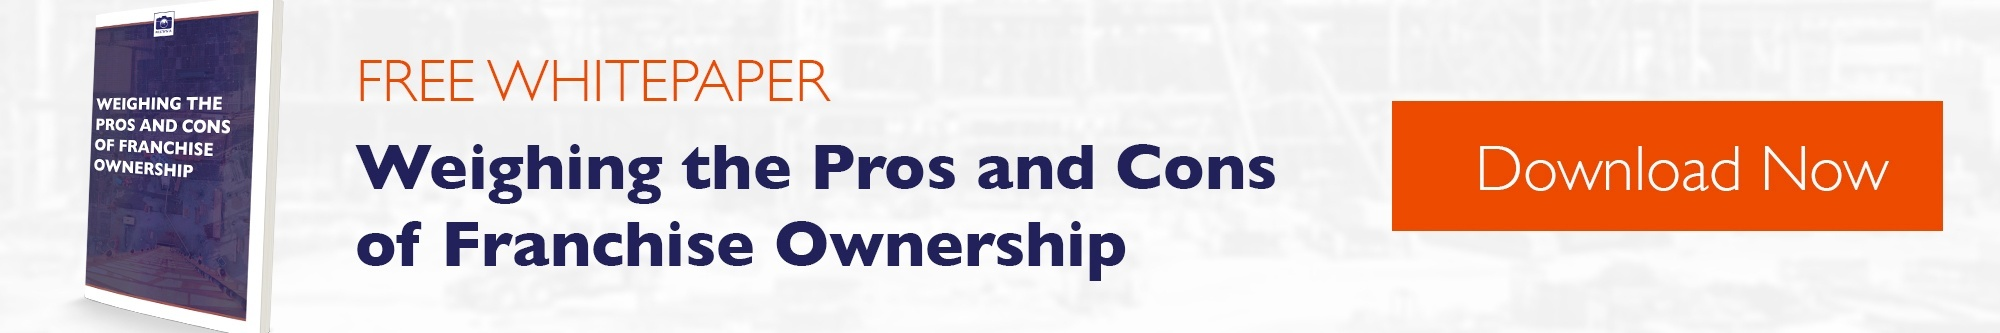 Download Weighing the Pros and Cons of Franchise Ownership Whitepaper